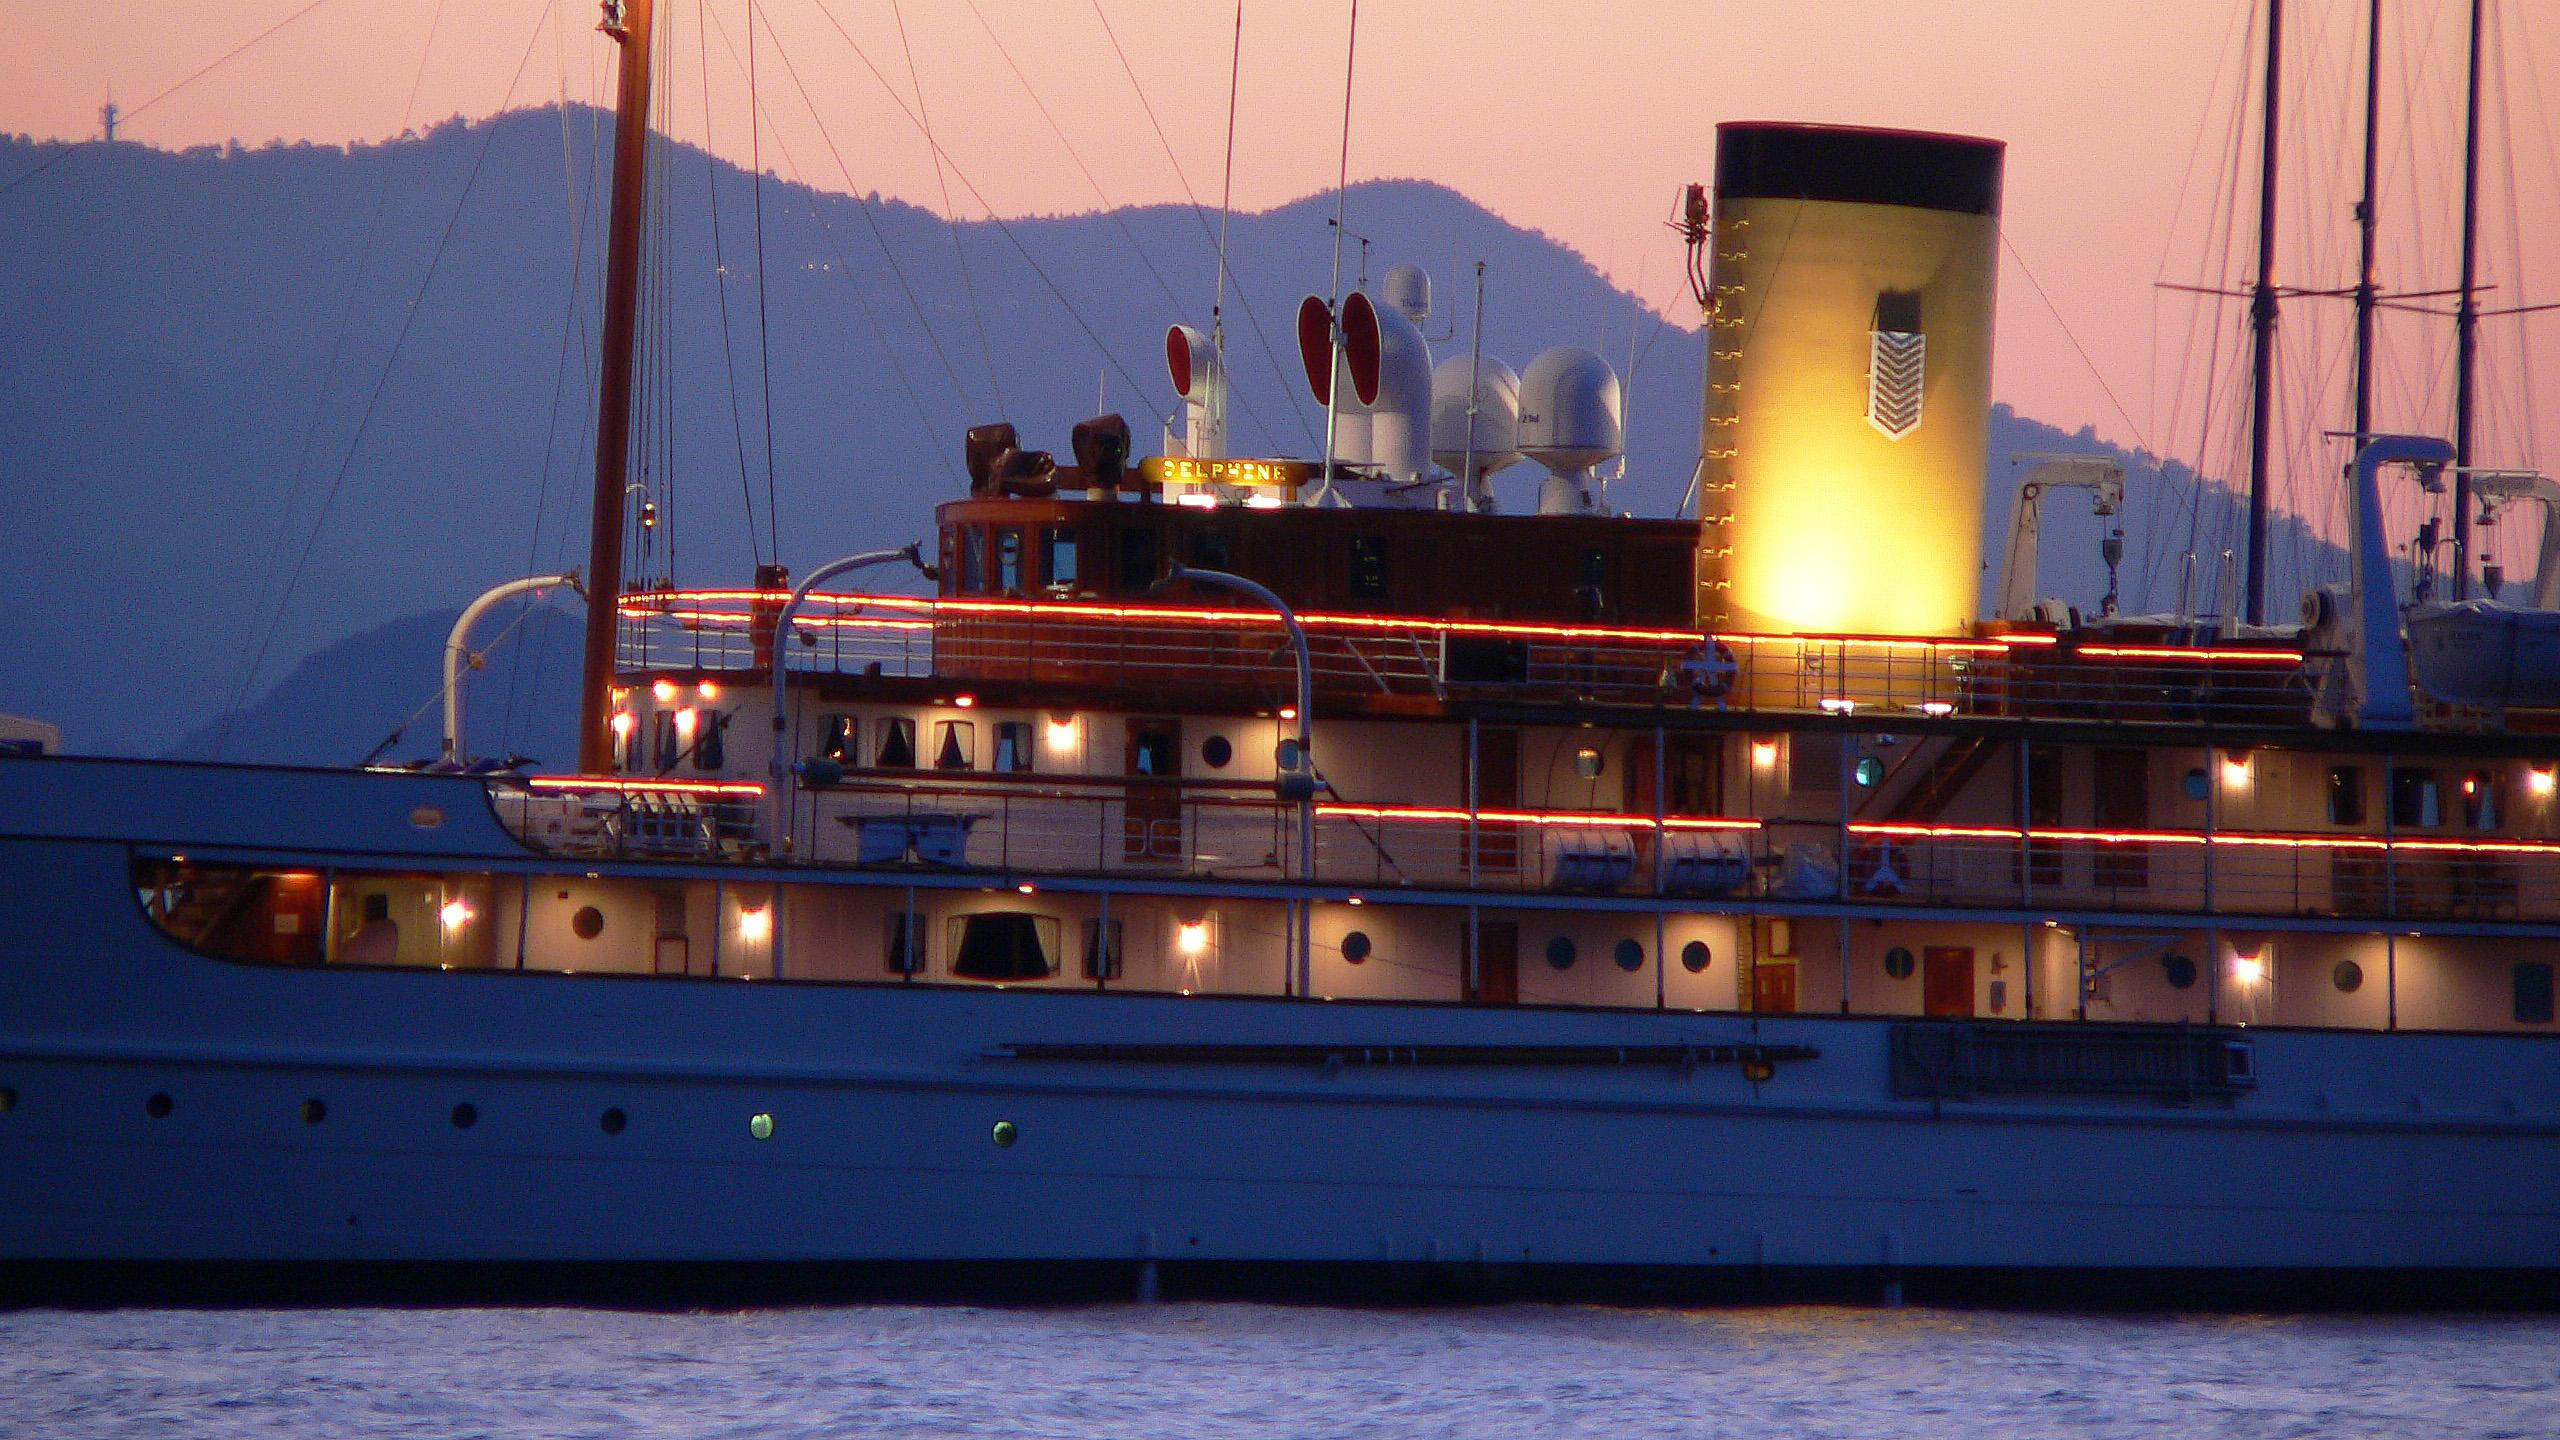 delphine-motor-yacht-1921-great-lakes-ew-79m-details-by-night